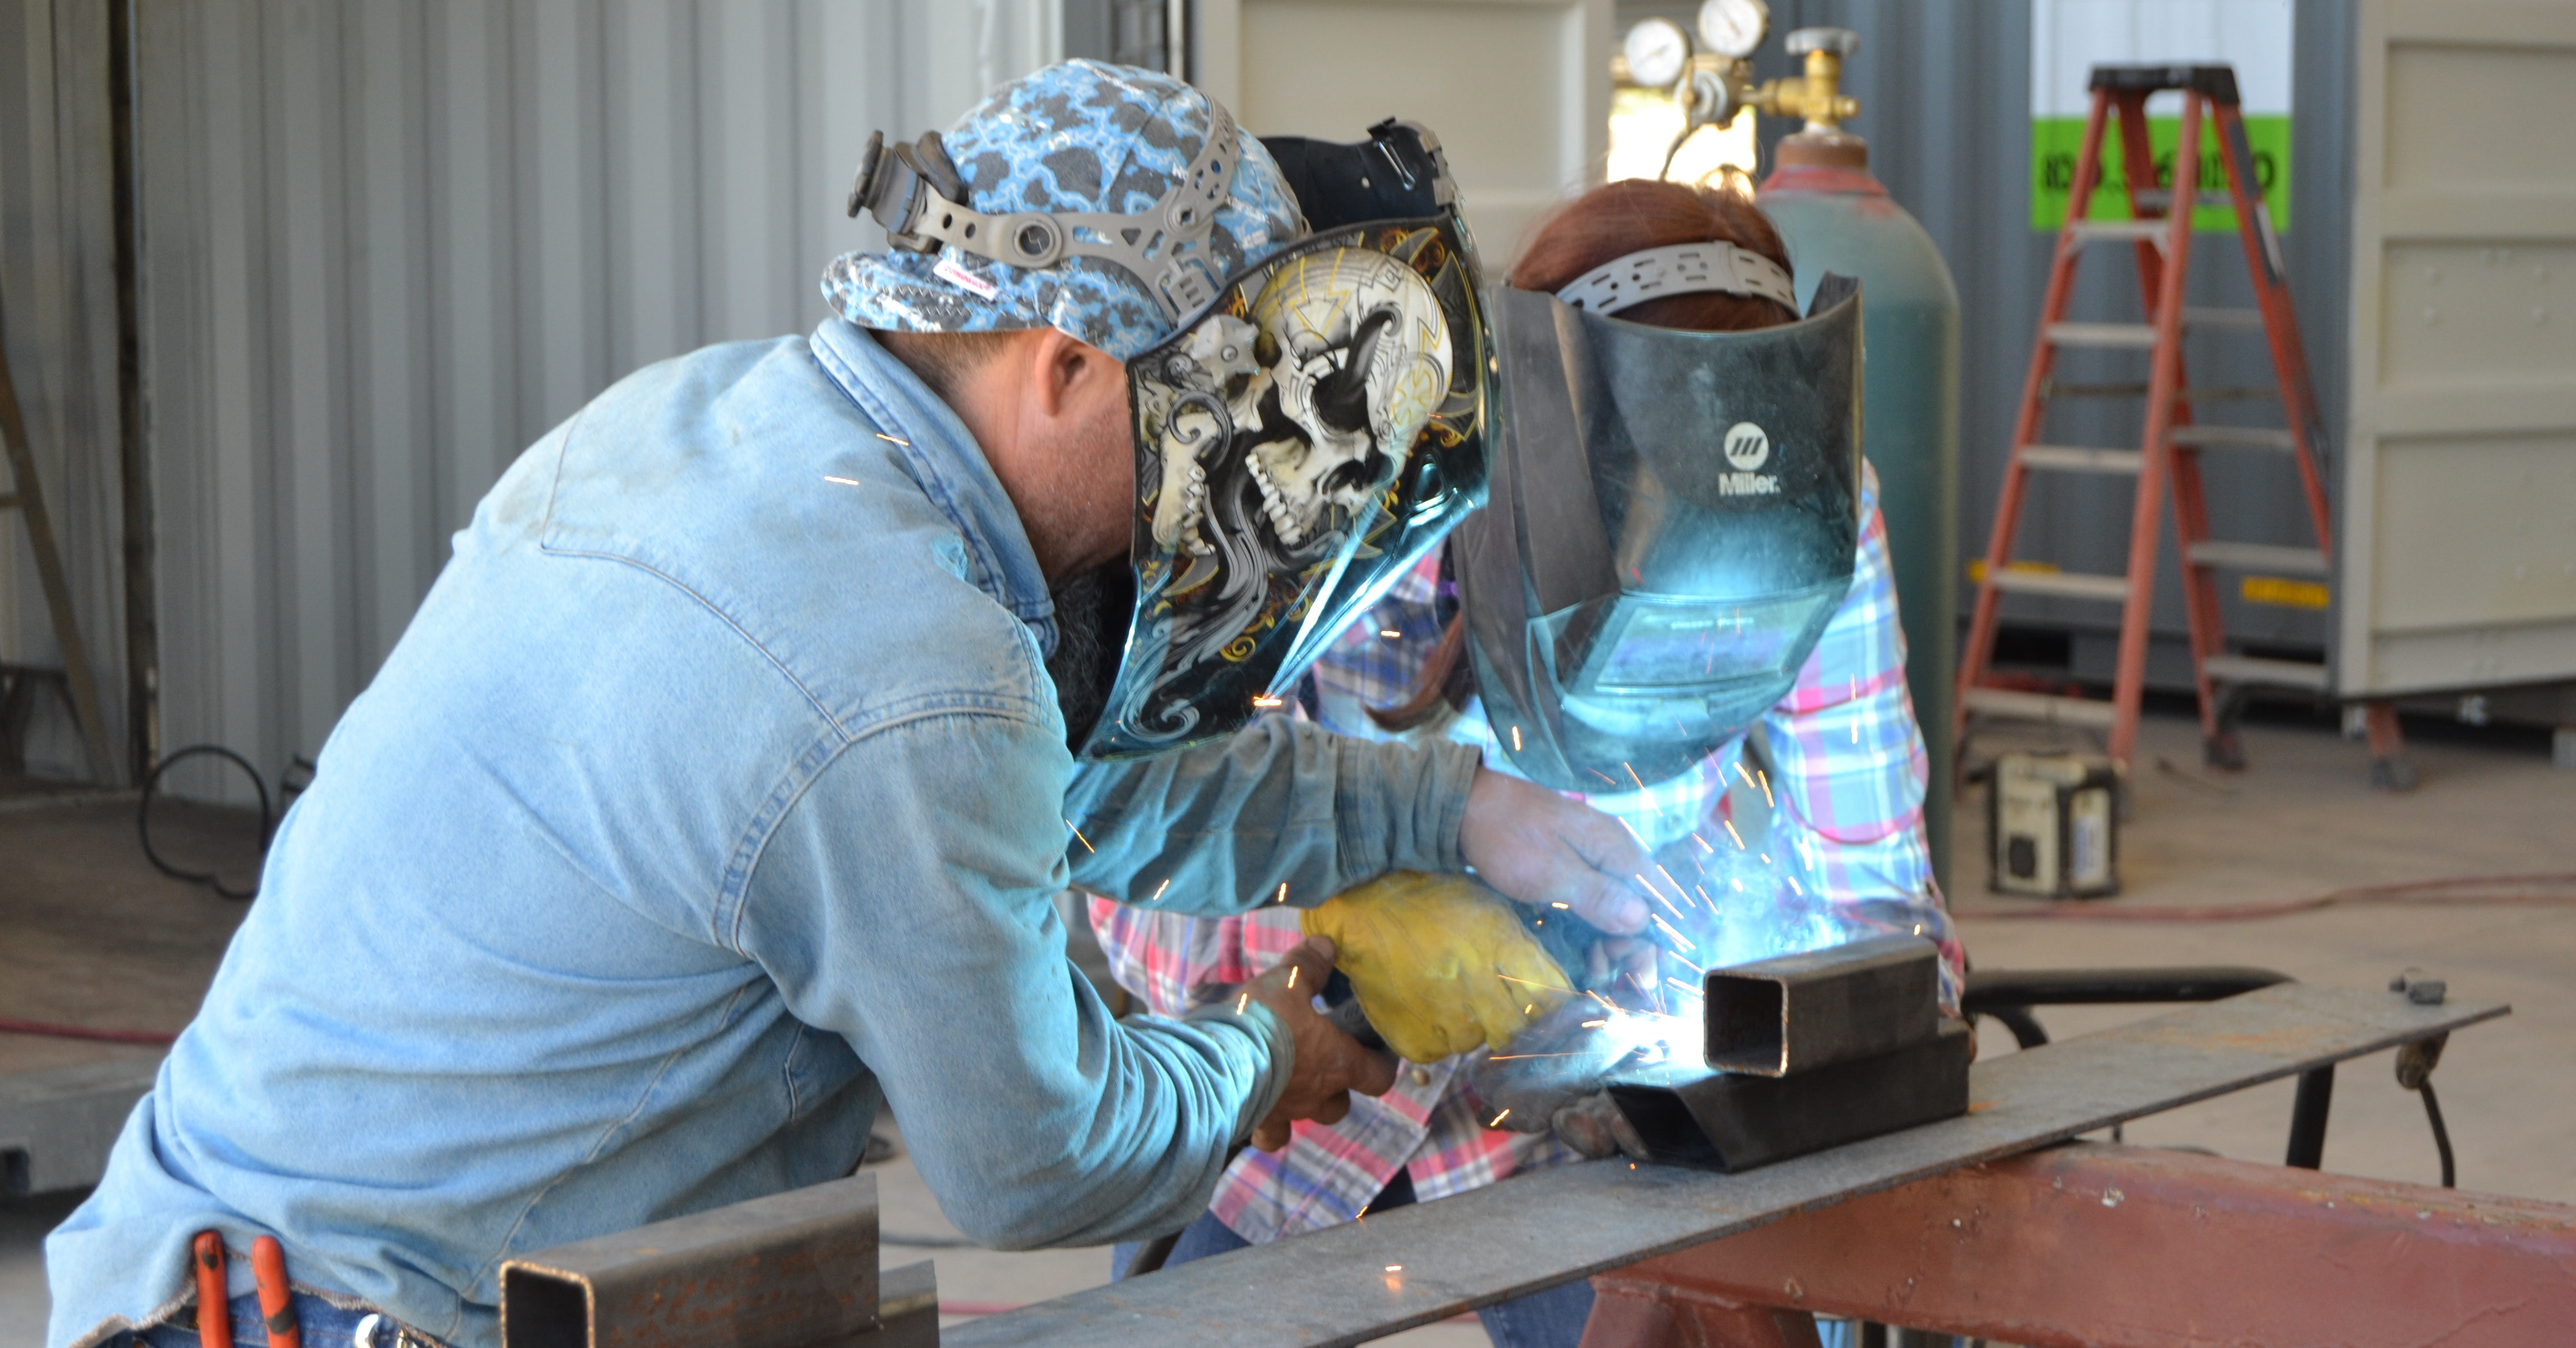 Adrian helps new boxpert, Paige, learn the basics of welding.